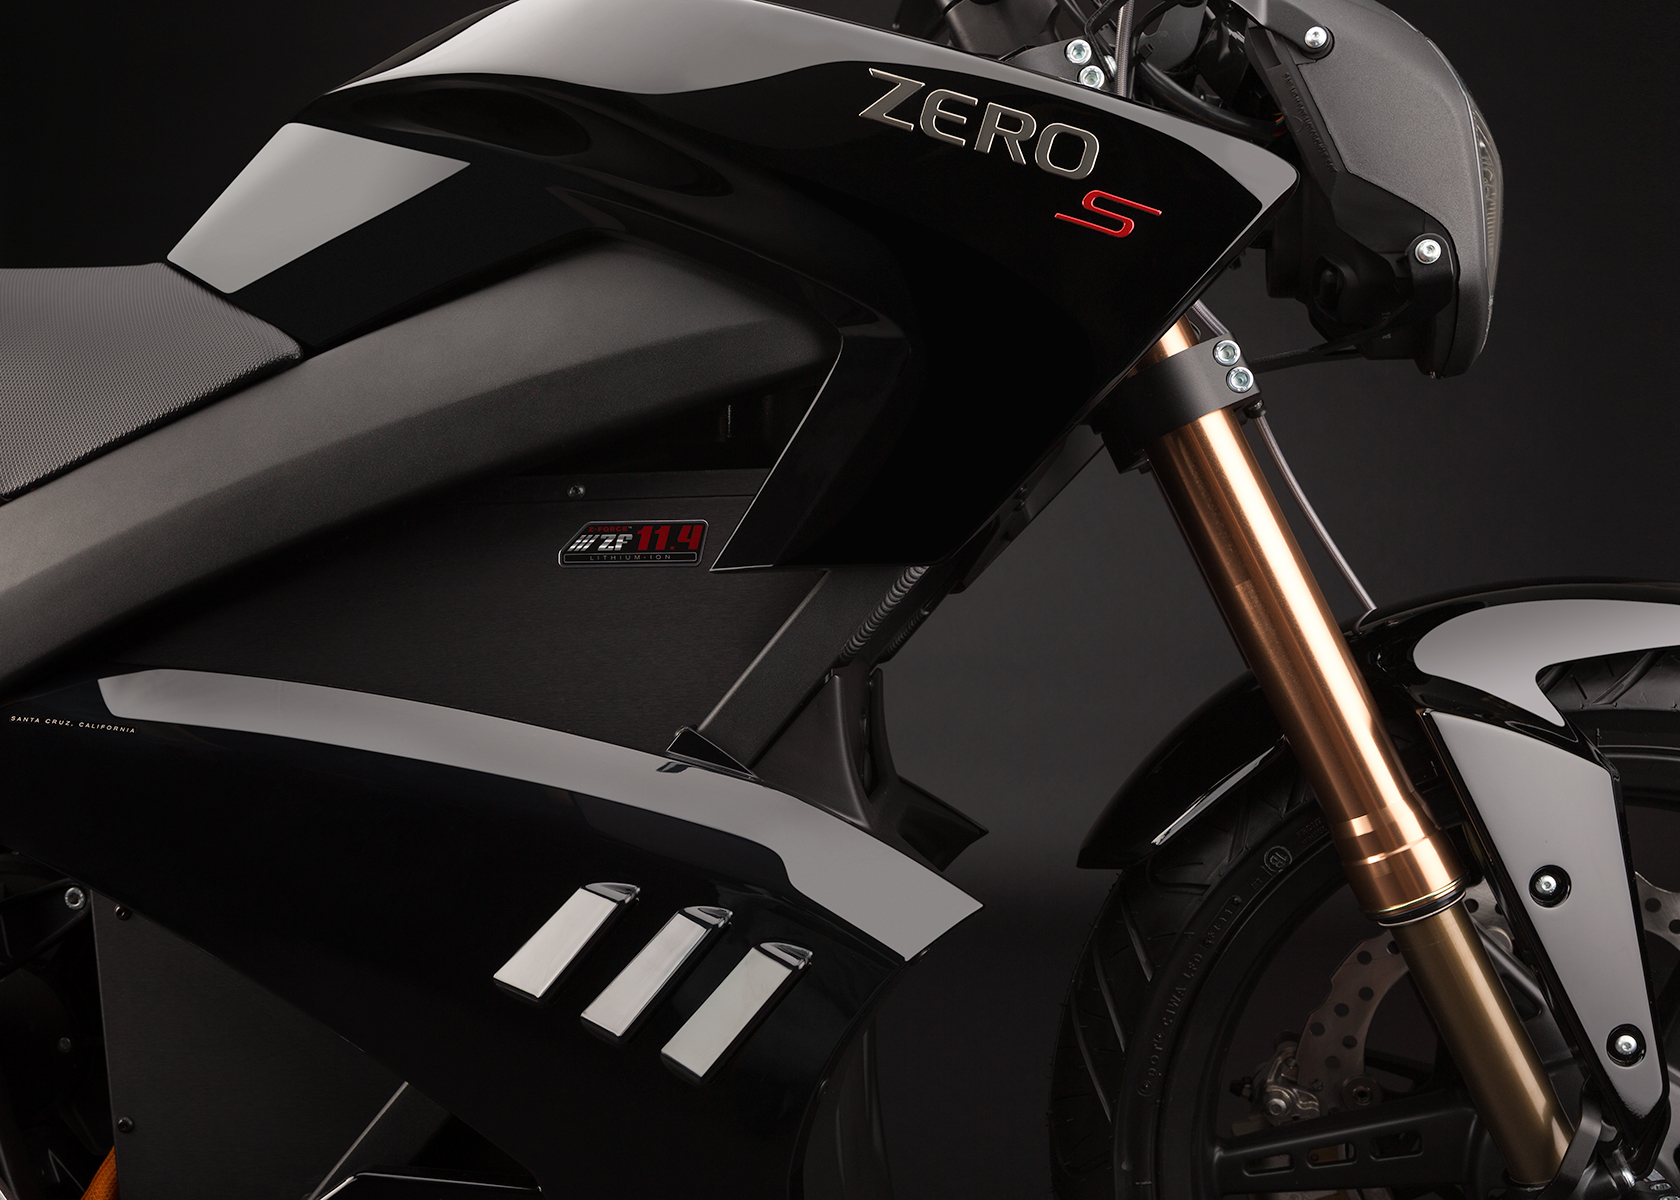 '.2013 Zero S Electric Motorcycle: Front Fork.'